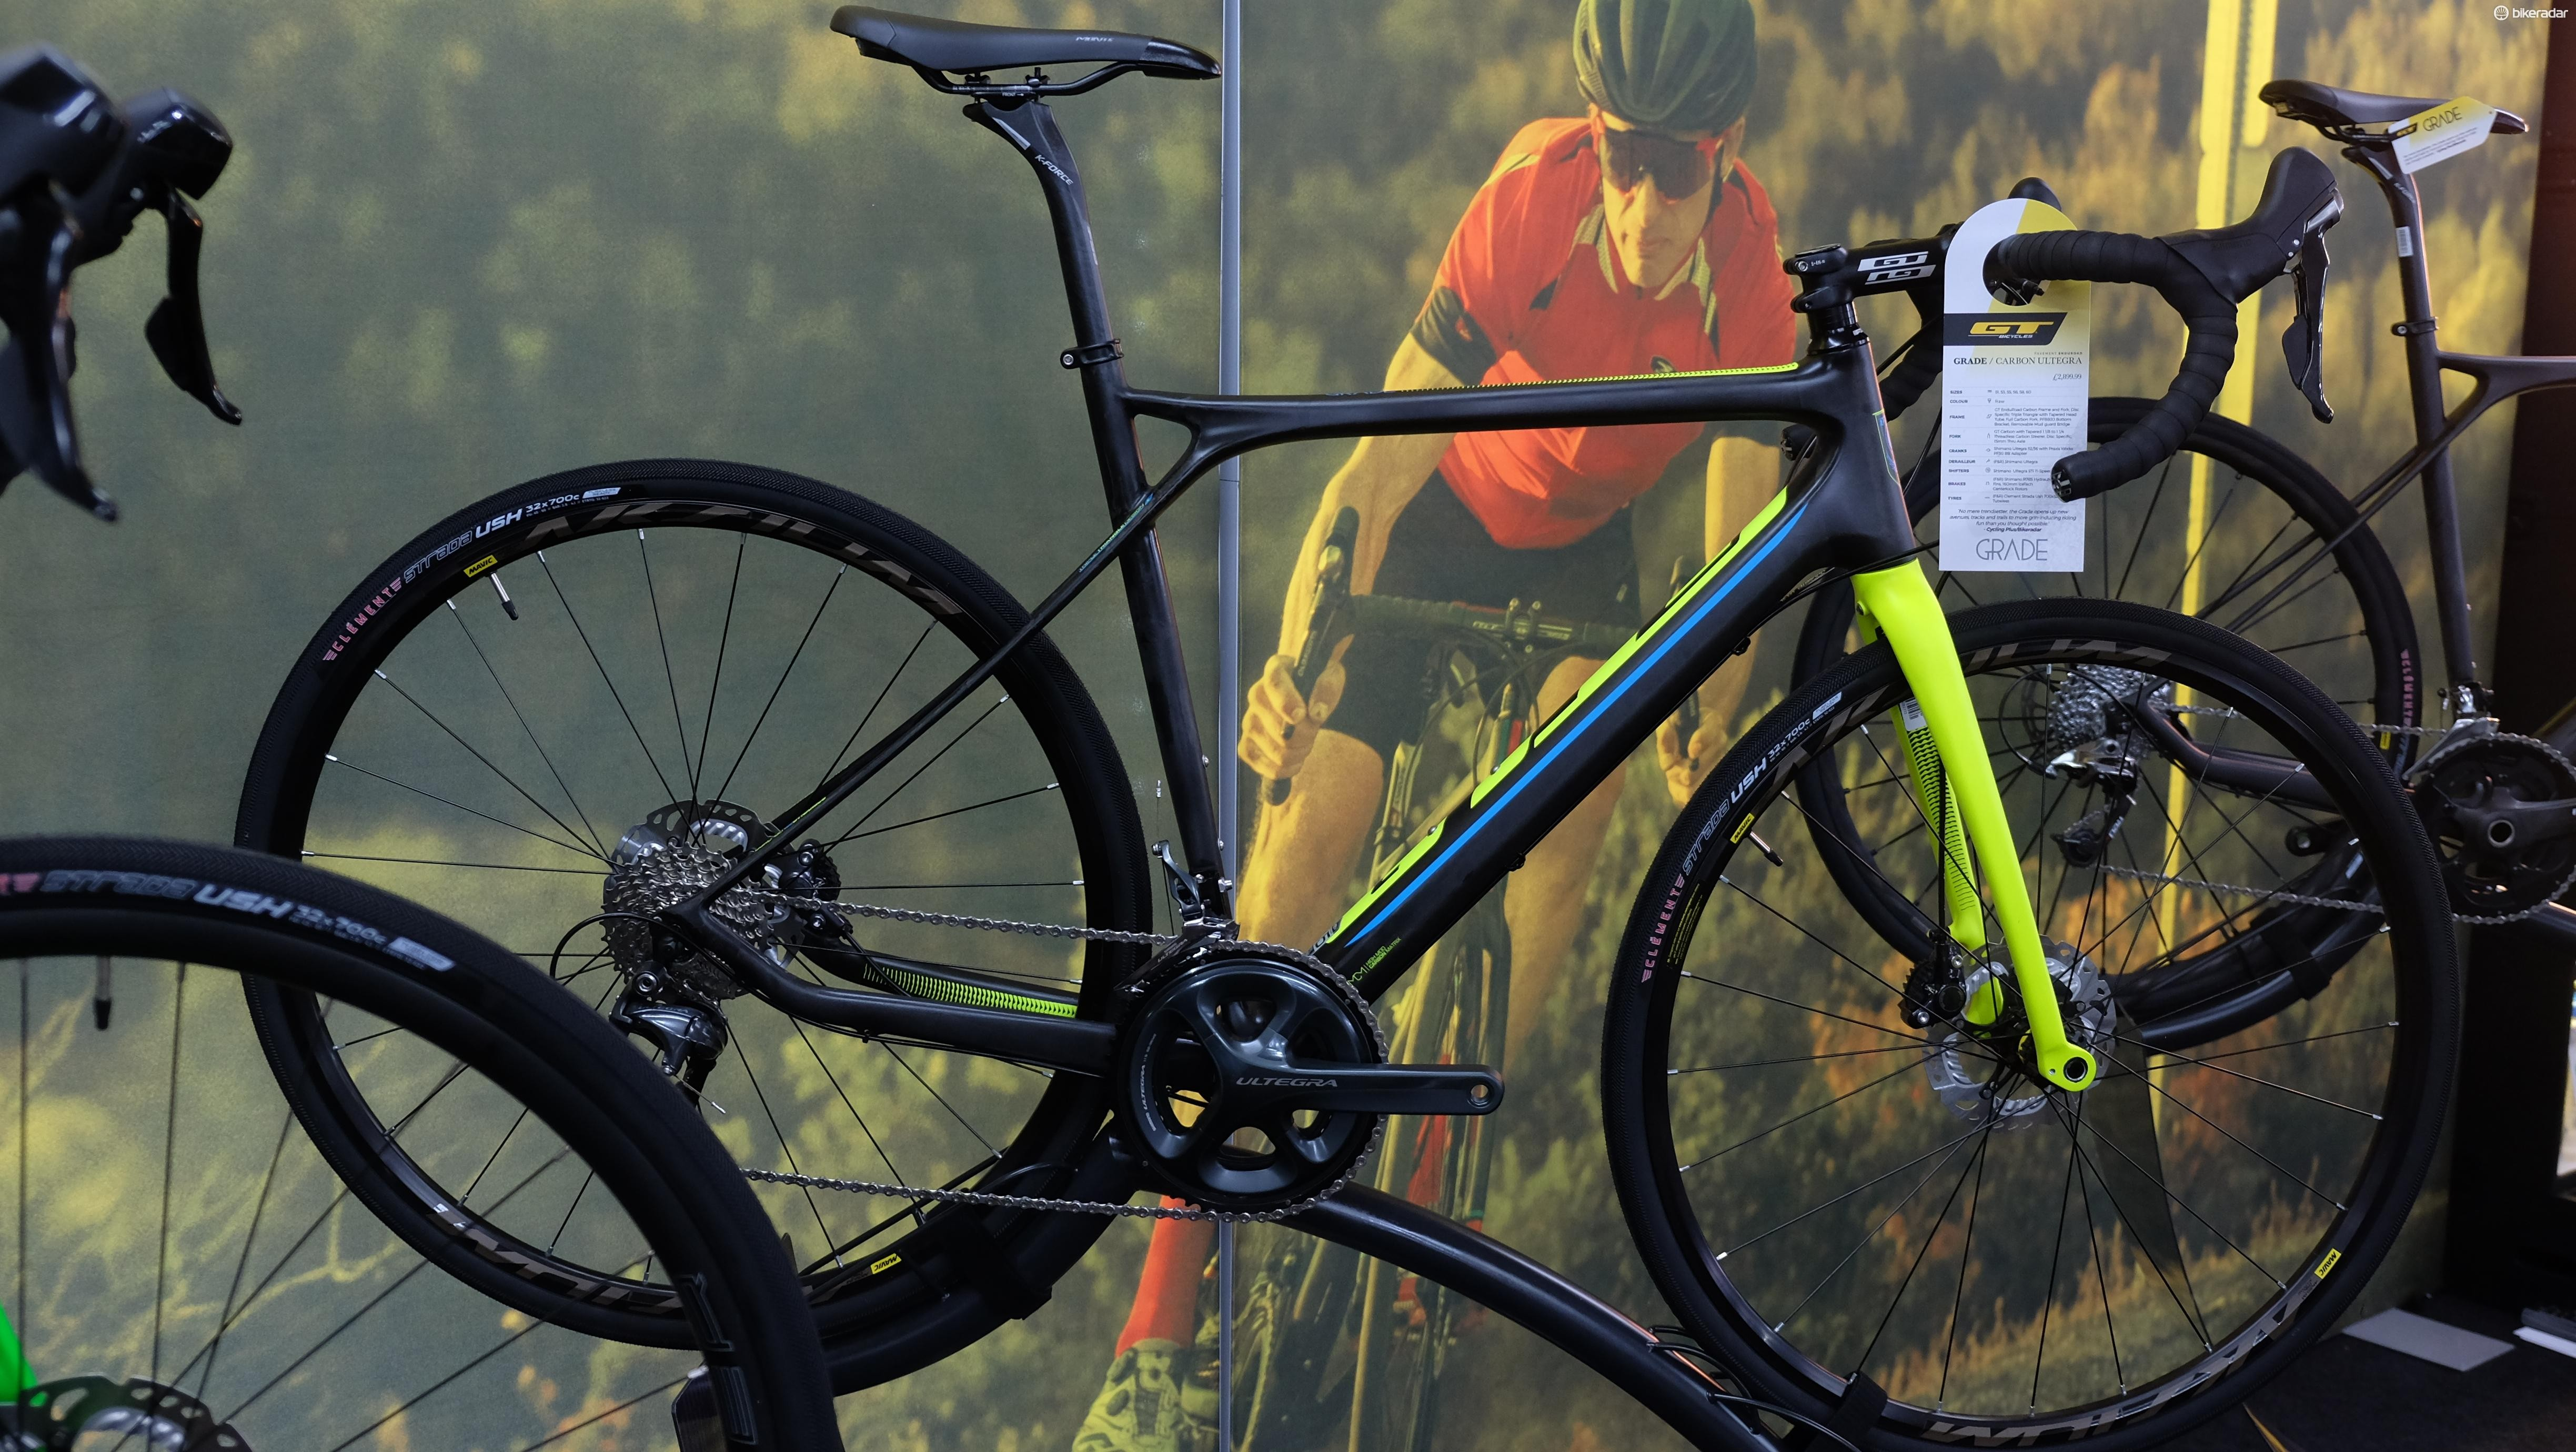 The 2017 GT Grade Carbon Ultegra will retail for £2,899